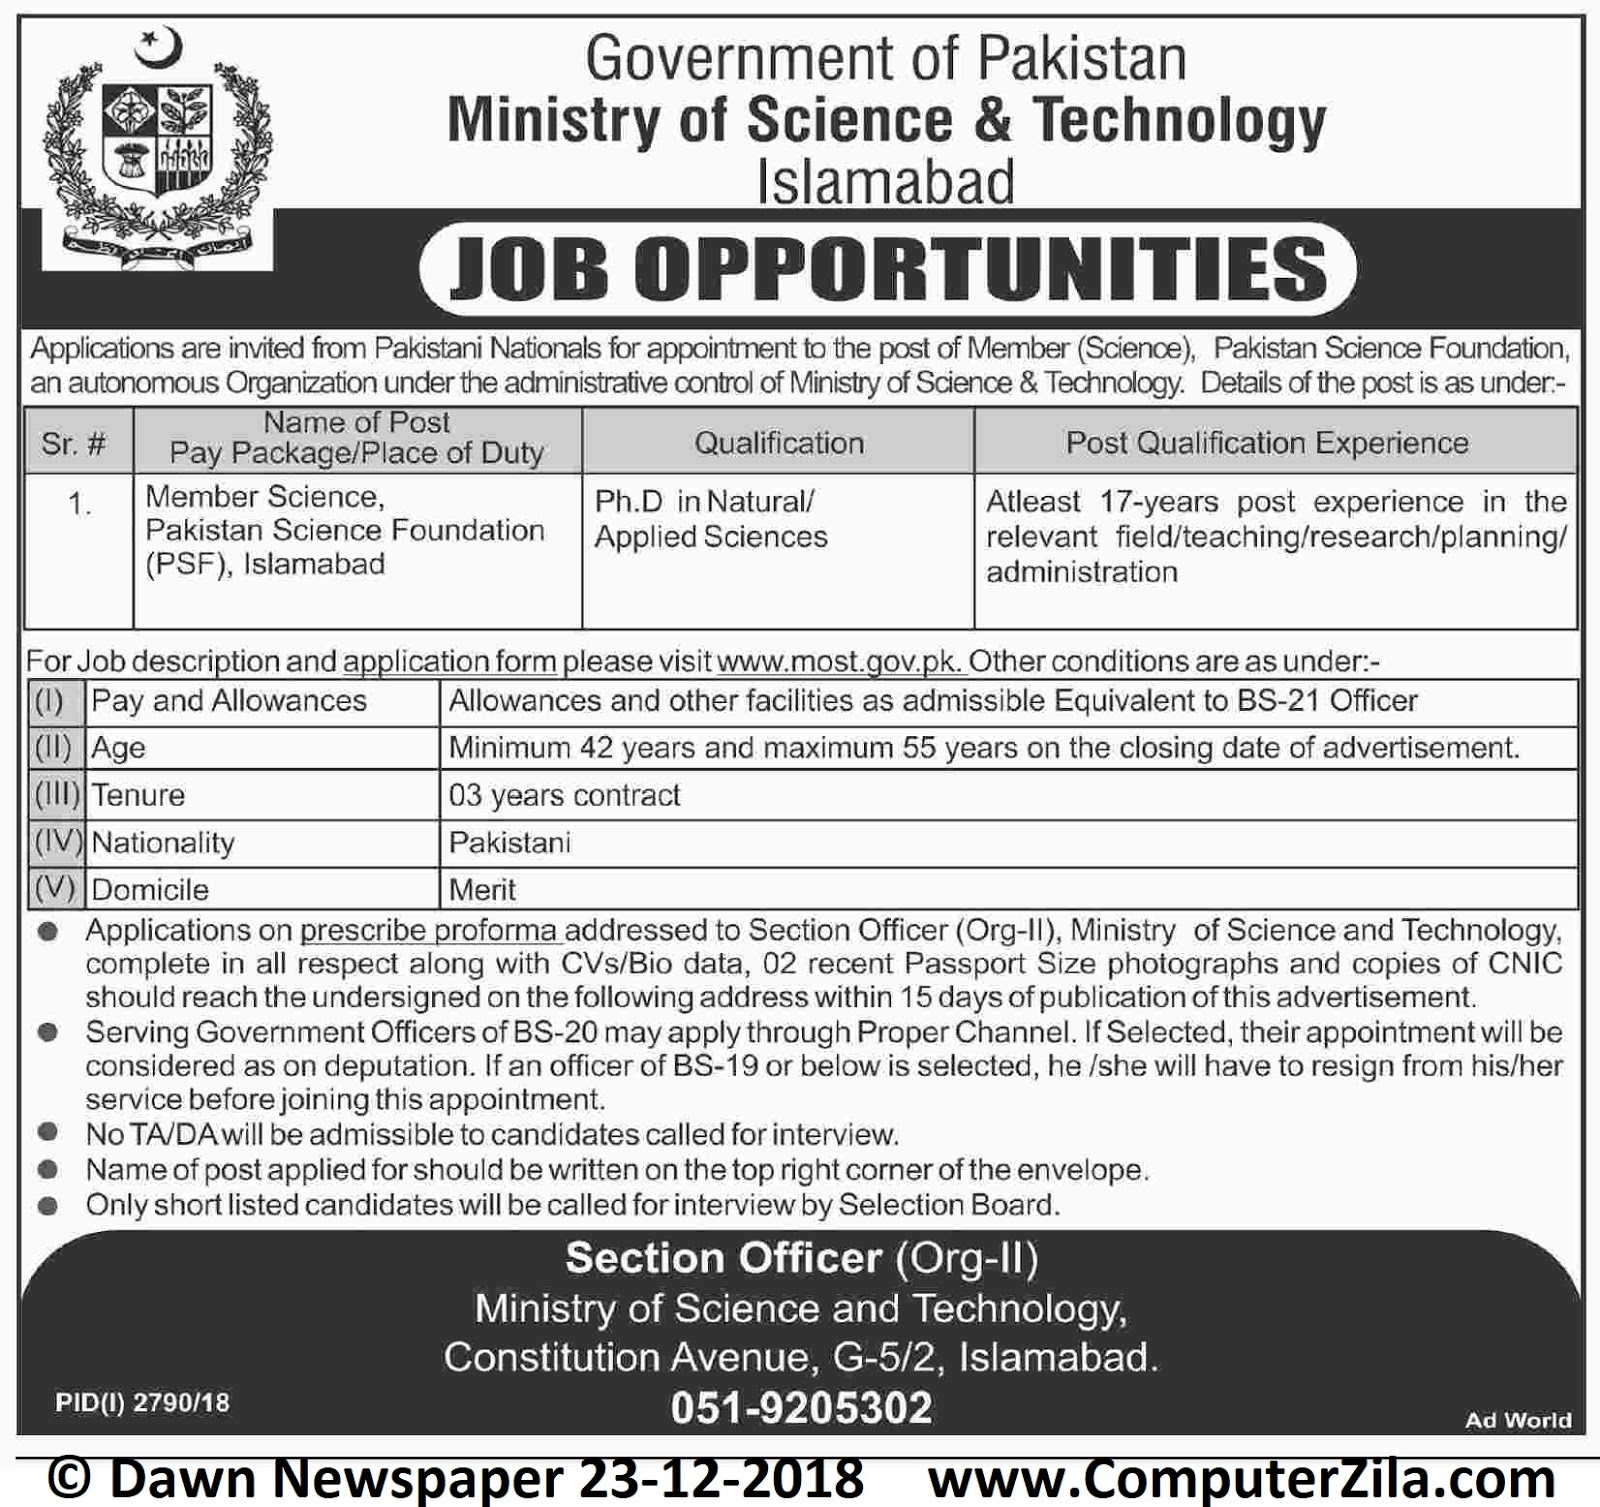 Job Opportunities at Government of Pakistan Ministry of Science & Technology